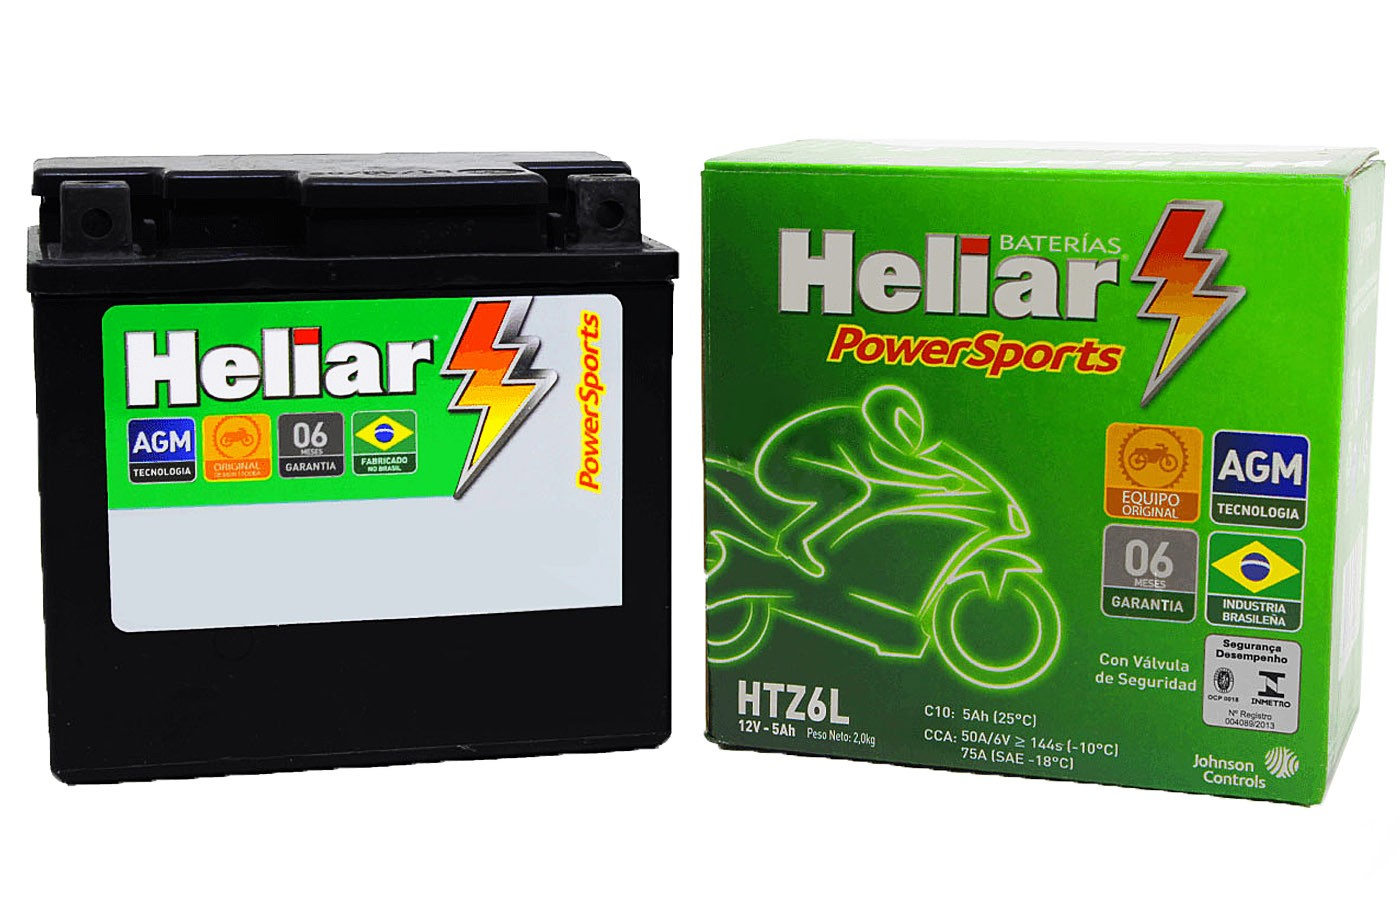 BATERIA CG/ TITAN/ FAN/ JOB/ MIX/ CARGO/ START 125-150-160 2000 A 2020 HELIAR (HTZ6L- YTZ6V)